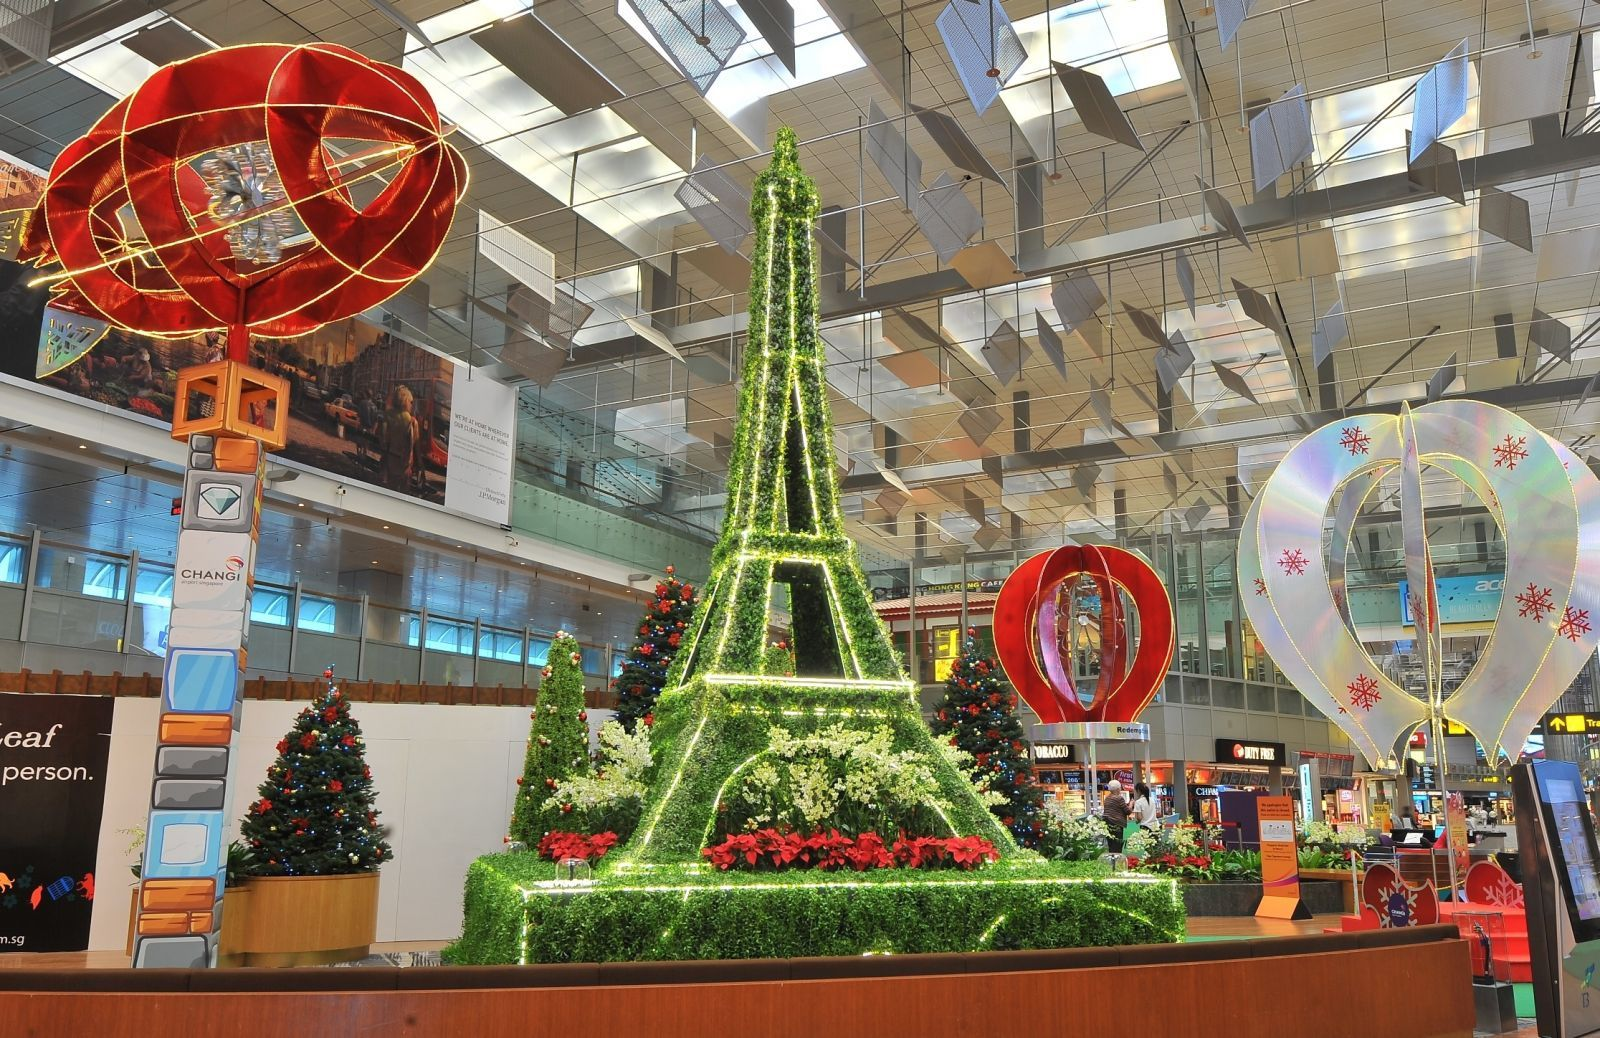 Eiffel Tower Decoration Ideas The World As Part Of Its Festive Decorations